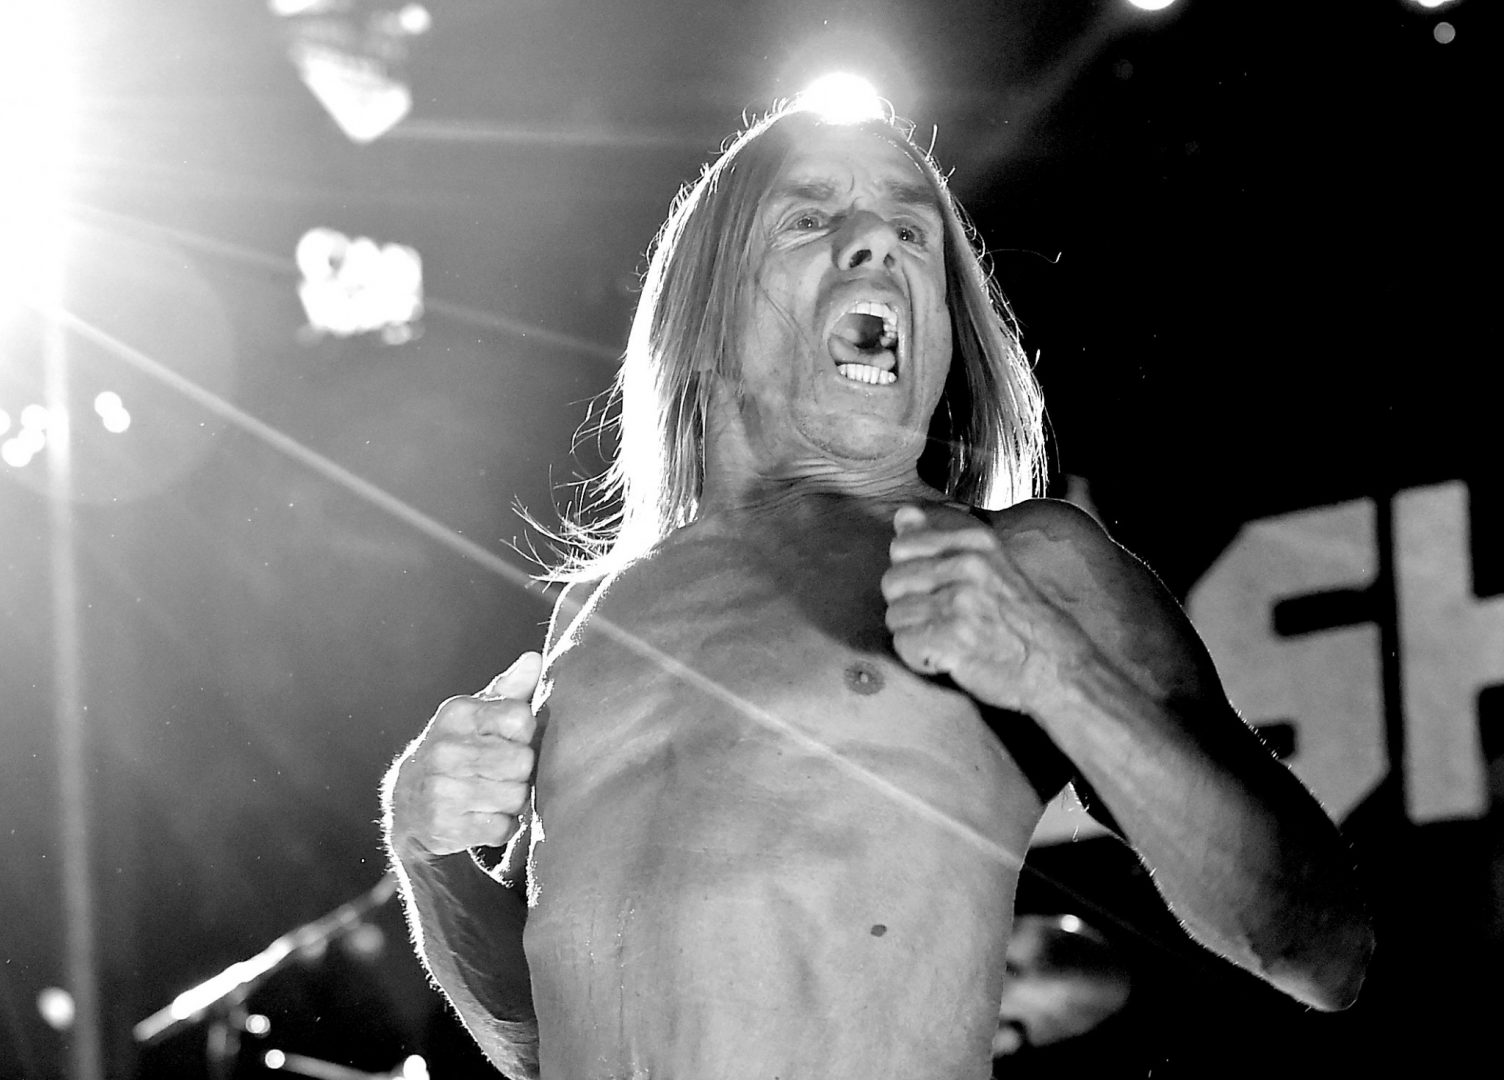 Iggy Pop and Josh Homme have recorded an album callled Post Pop Depression together